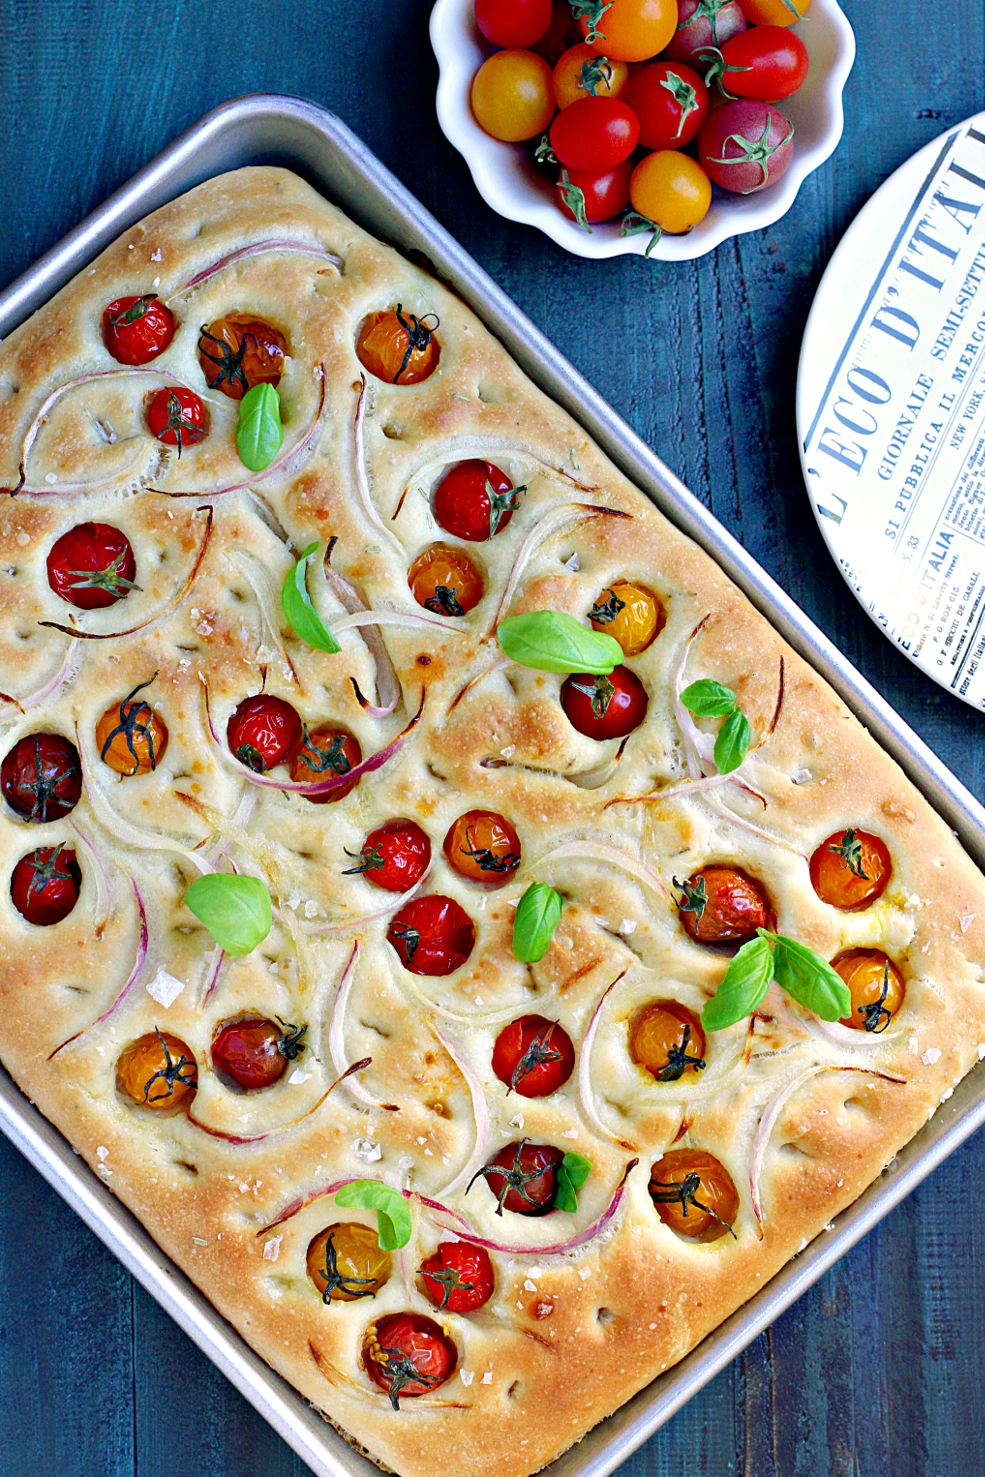 Image of focaccia with cherry tomatoes and red onions.